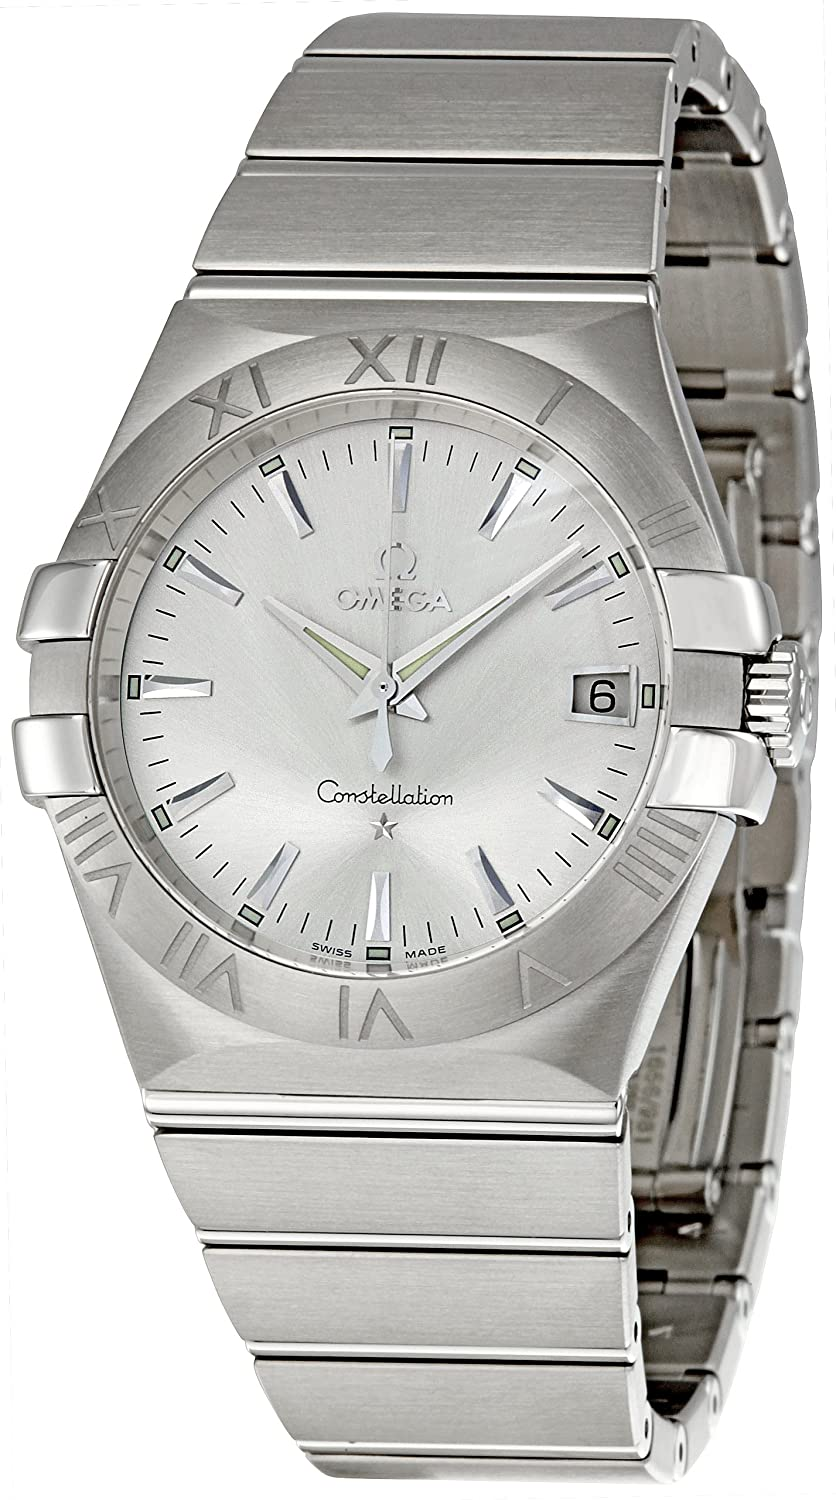 e37d7b8d6f7 Buy Omega Men s 123.10.35.60.02.001 Constellation 09 Silver Dial Watch  Online at Low Prices in India - Amazon.in